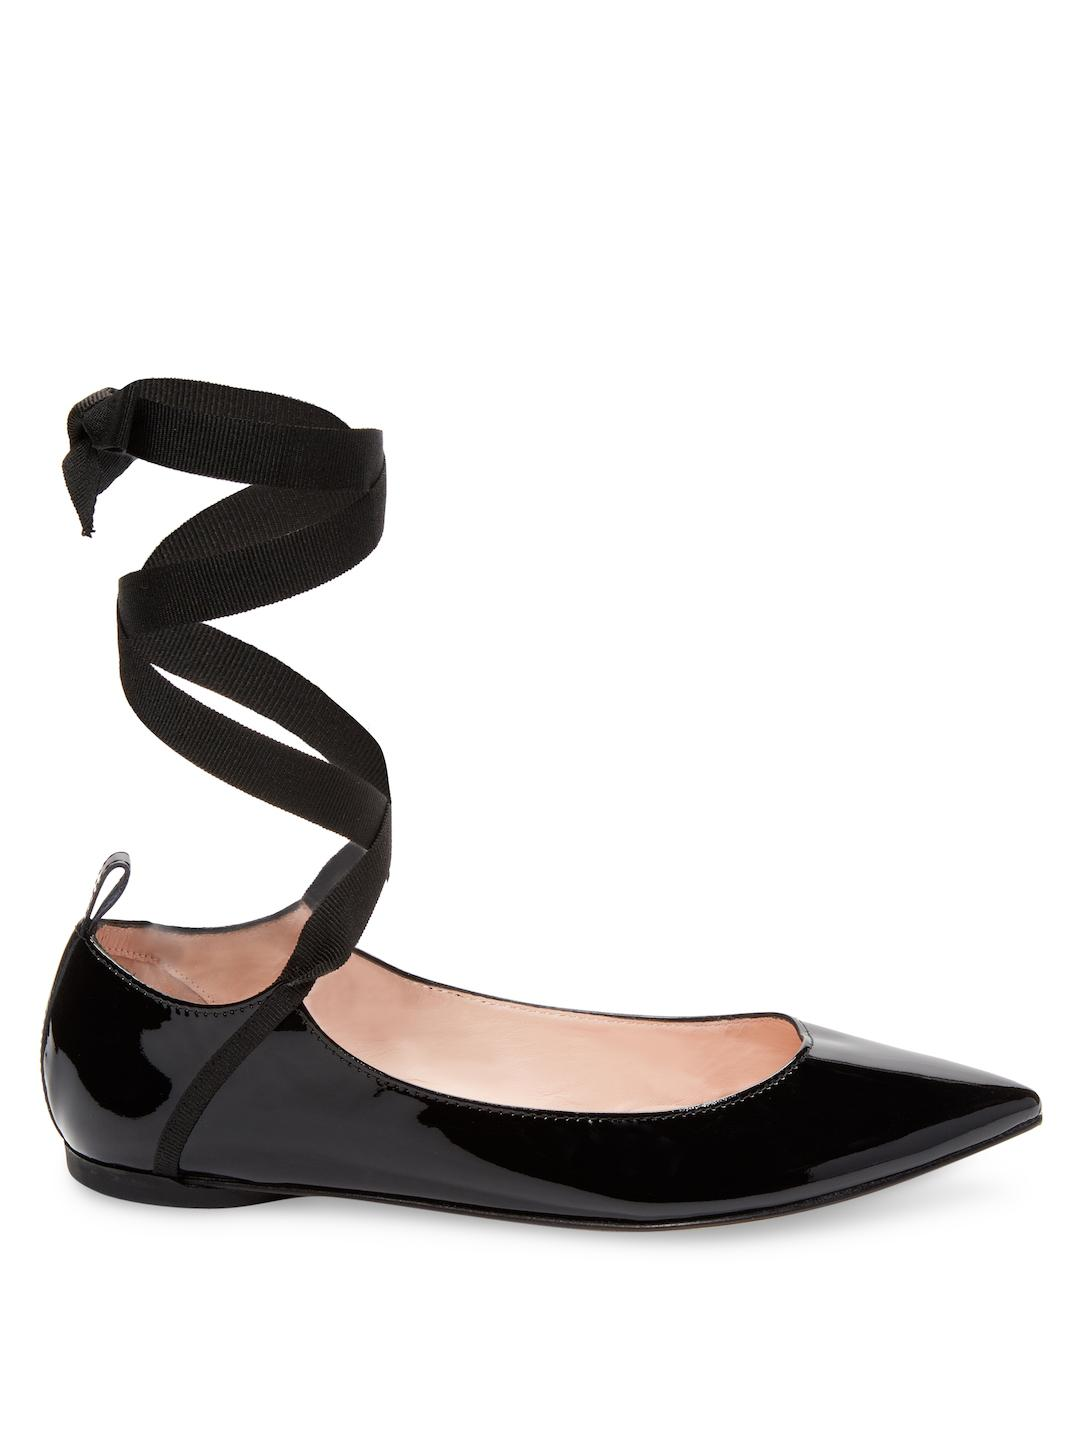 Repetto Patent Leather T-Strap Flats best place to buy W9n7hOPk